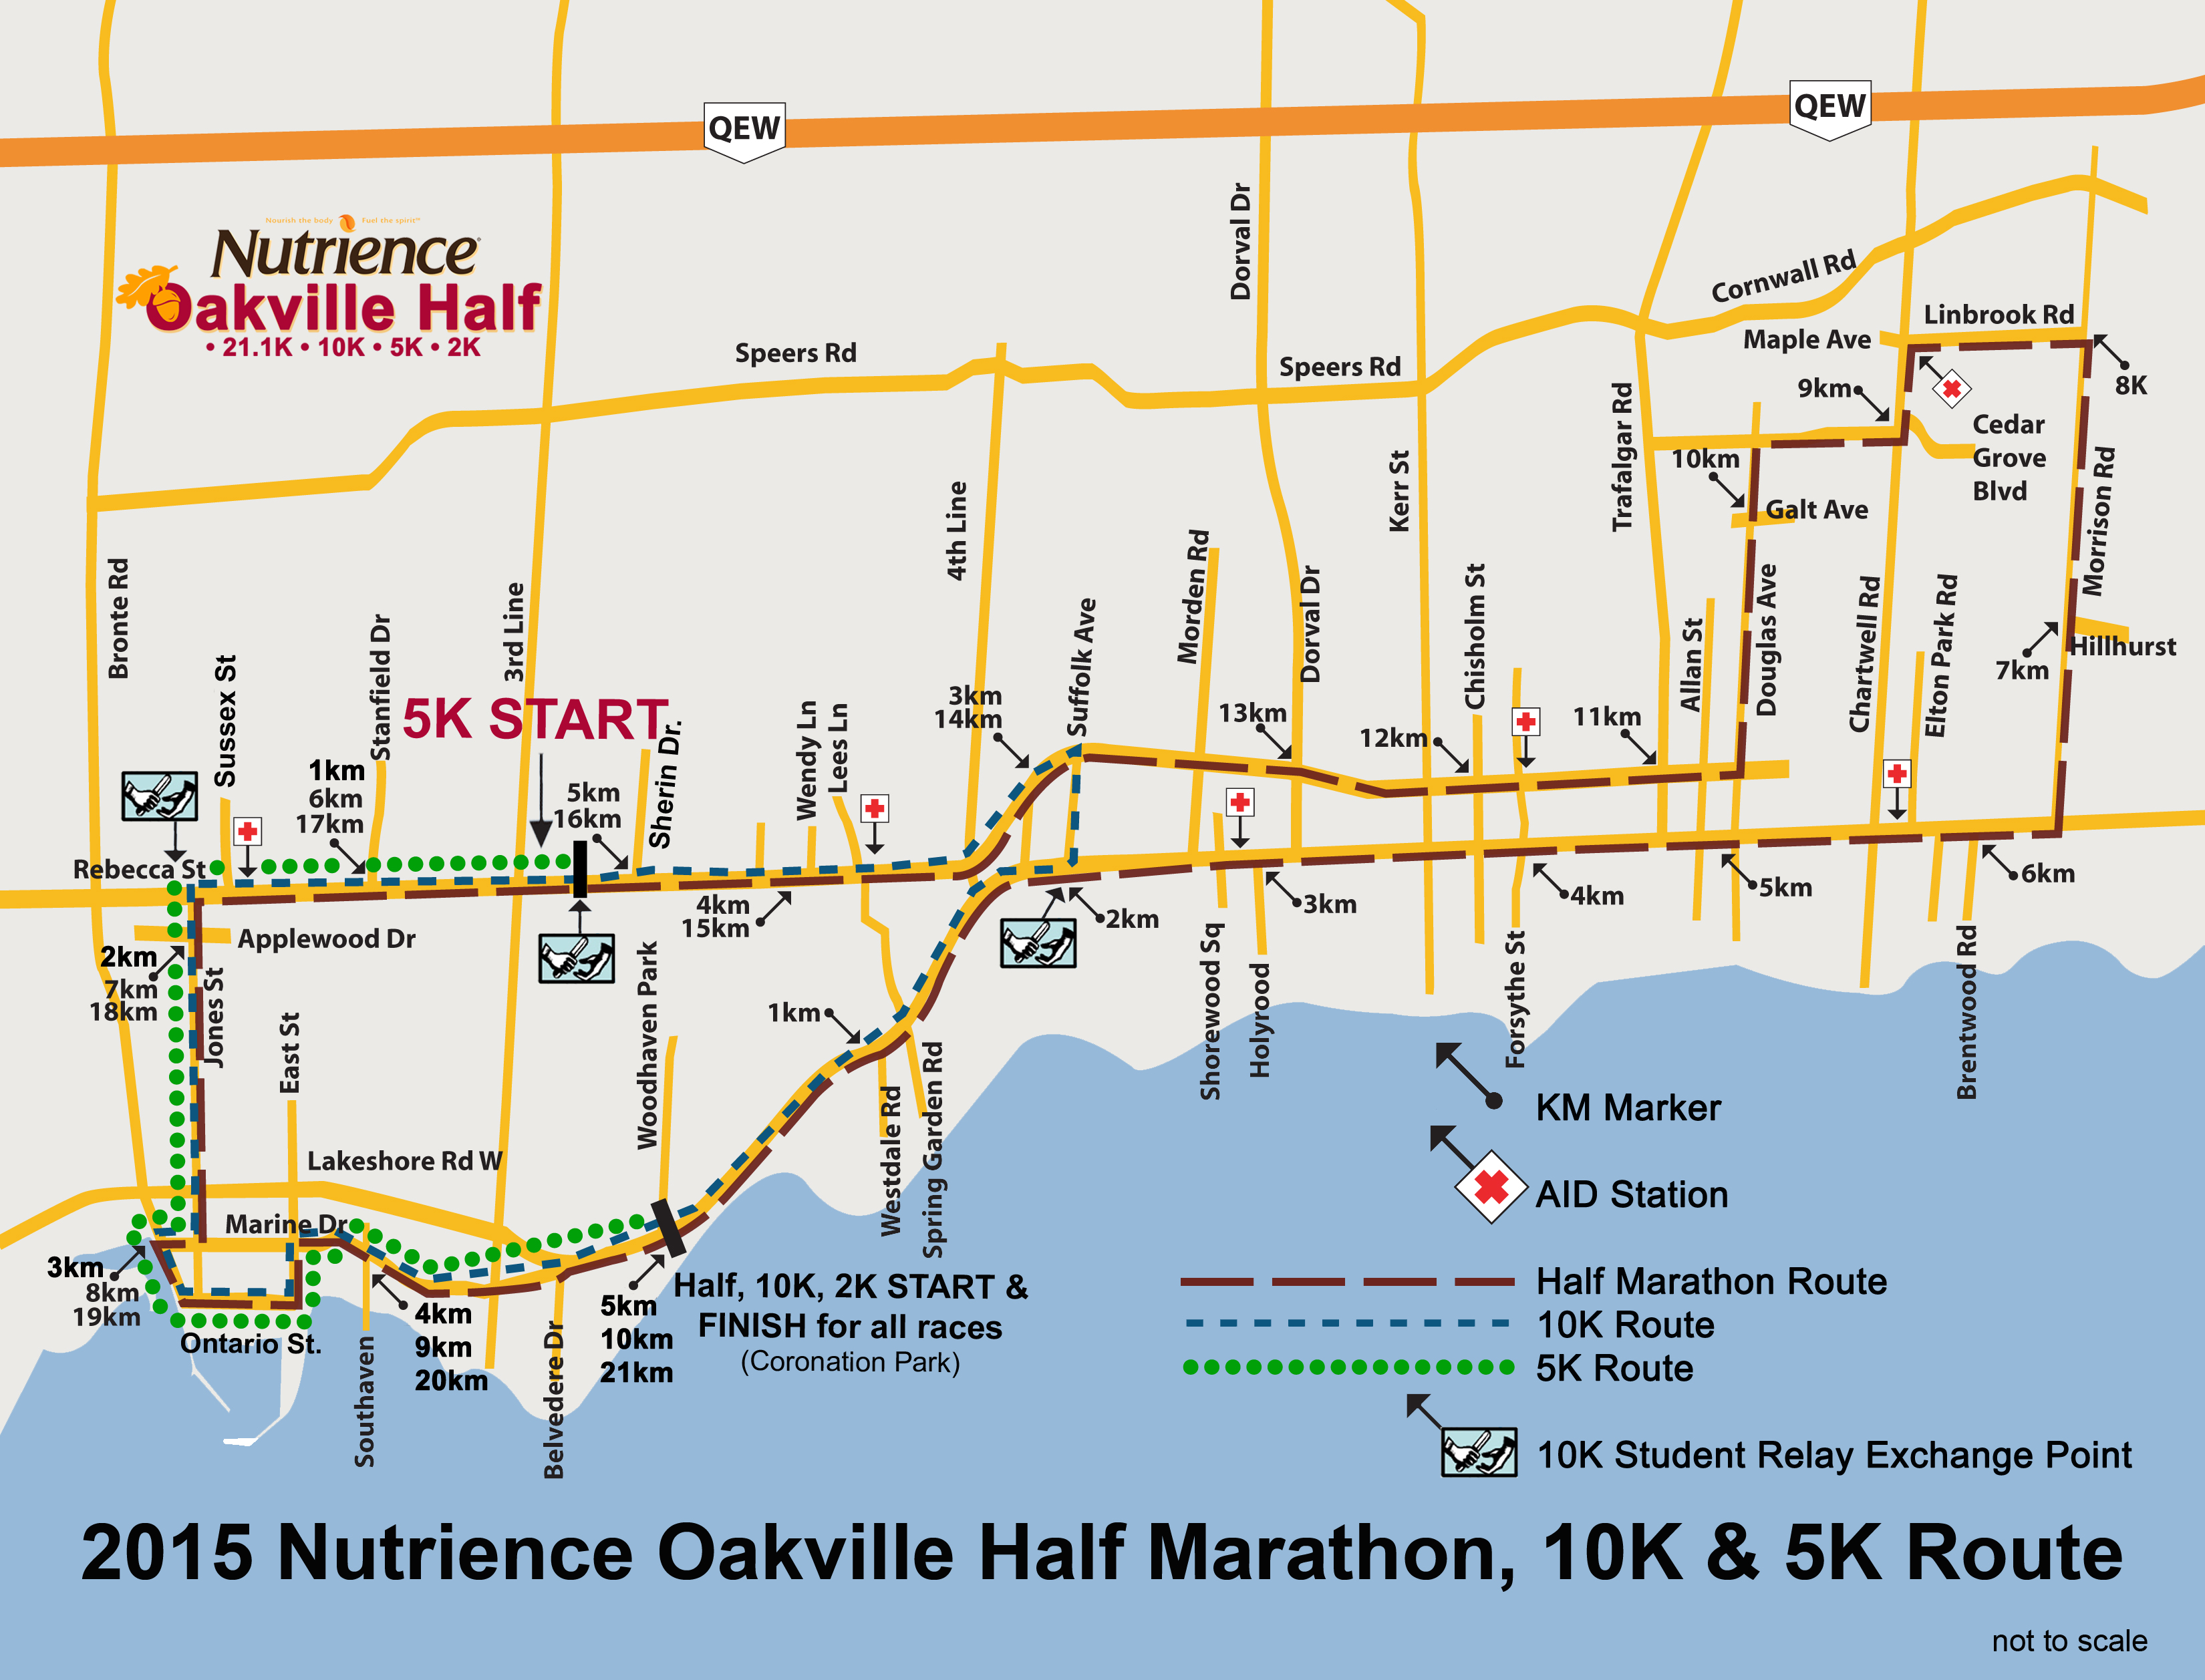 2015 noh 10k 5k route map